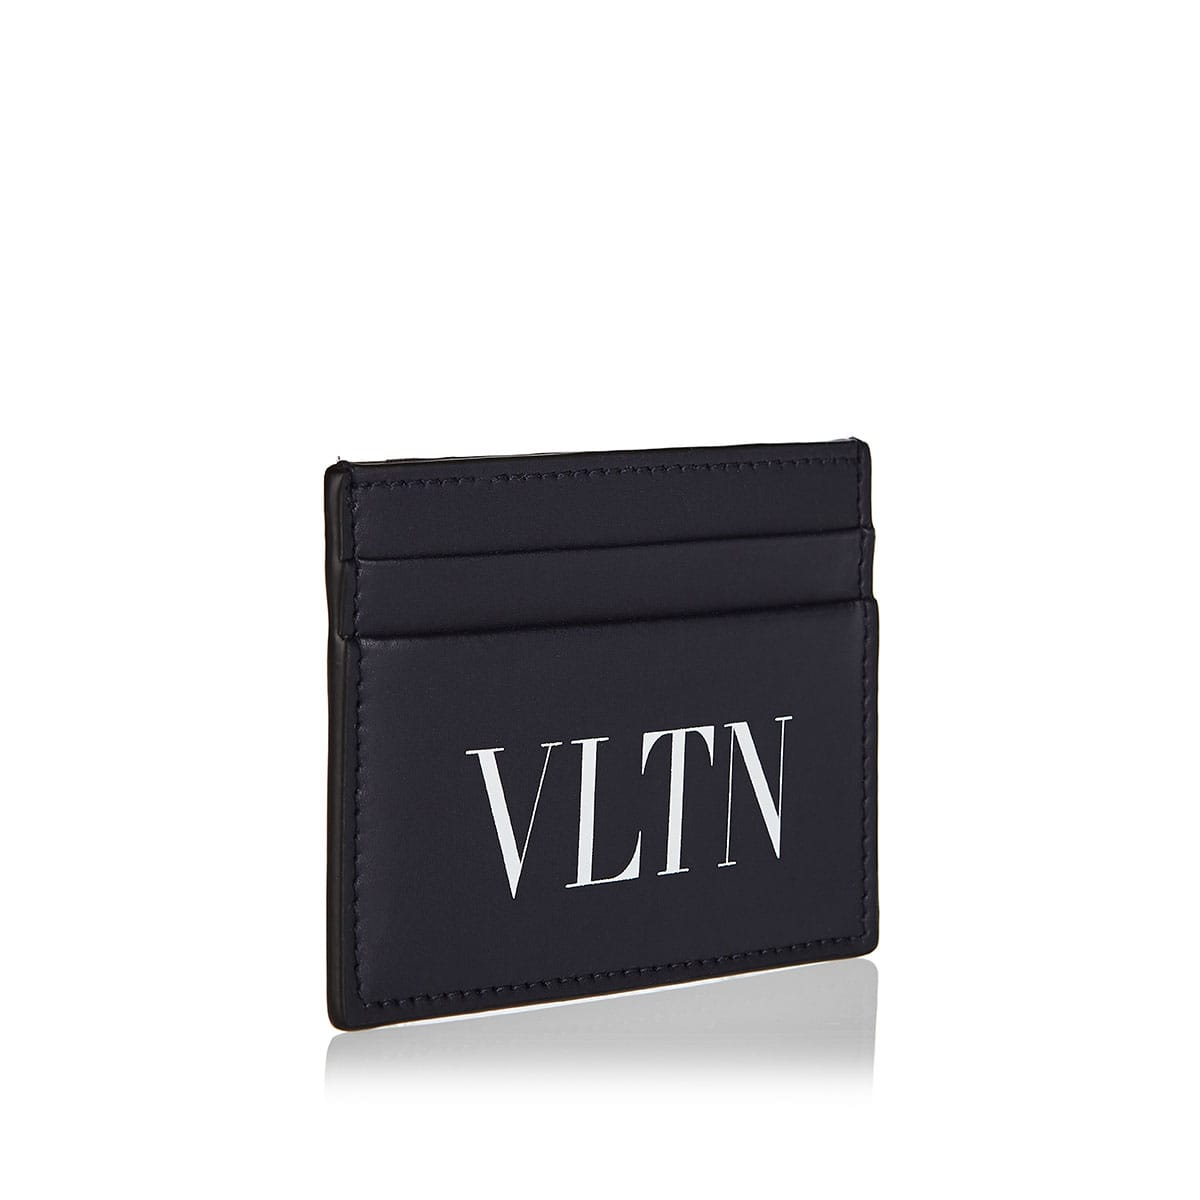 VLTN leather cardholder